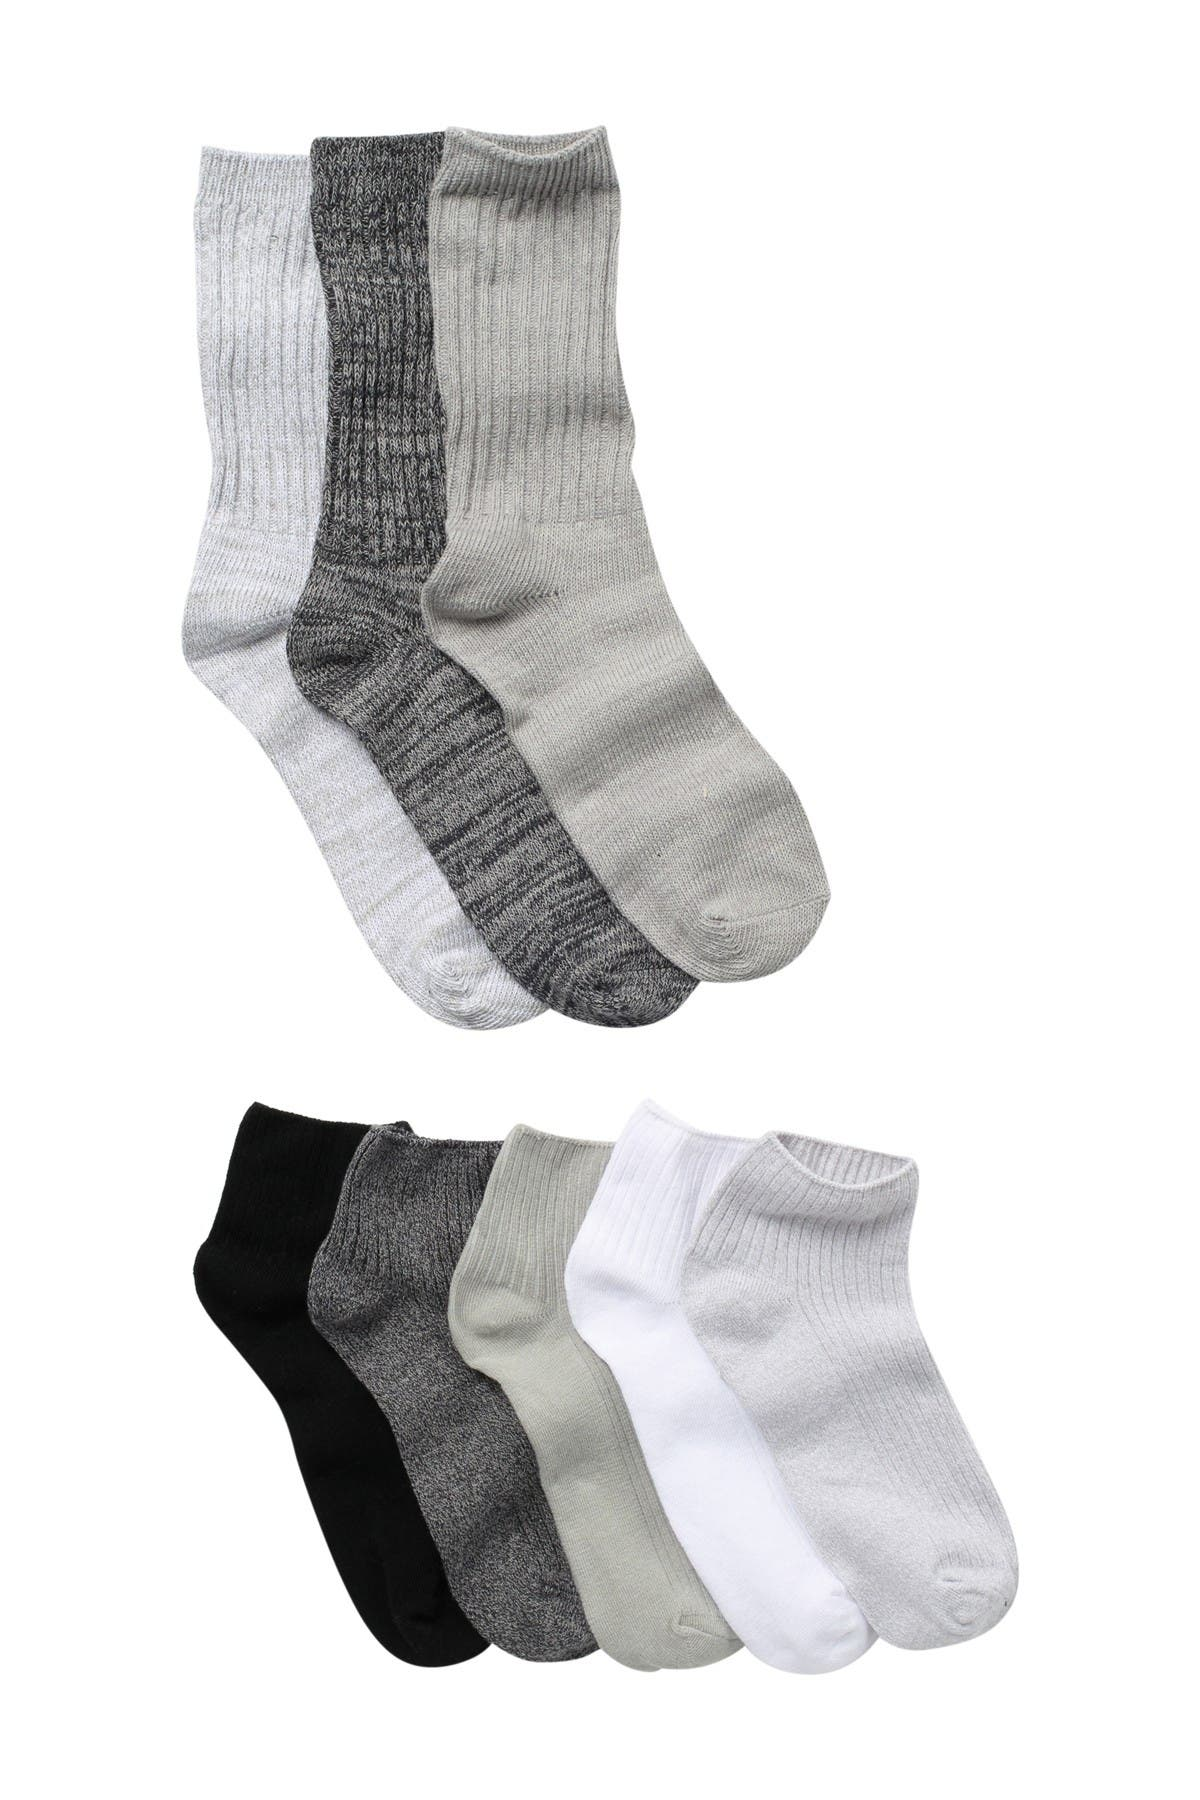 Image of Christian Siriano New York High Ankle & Crew Lengths Socks - Pack of 8